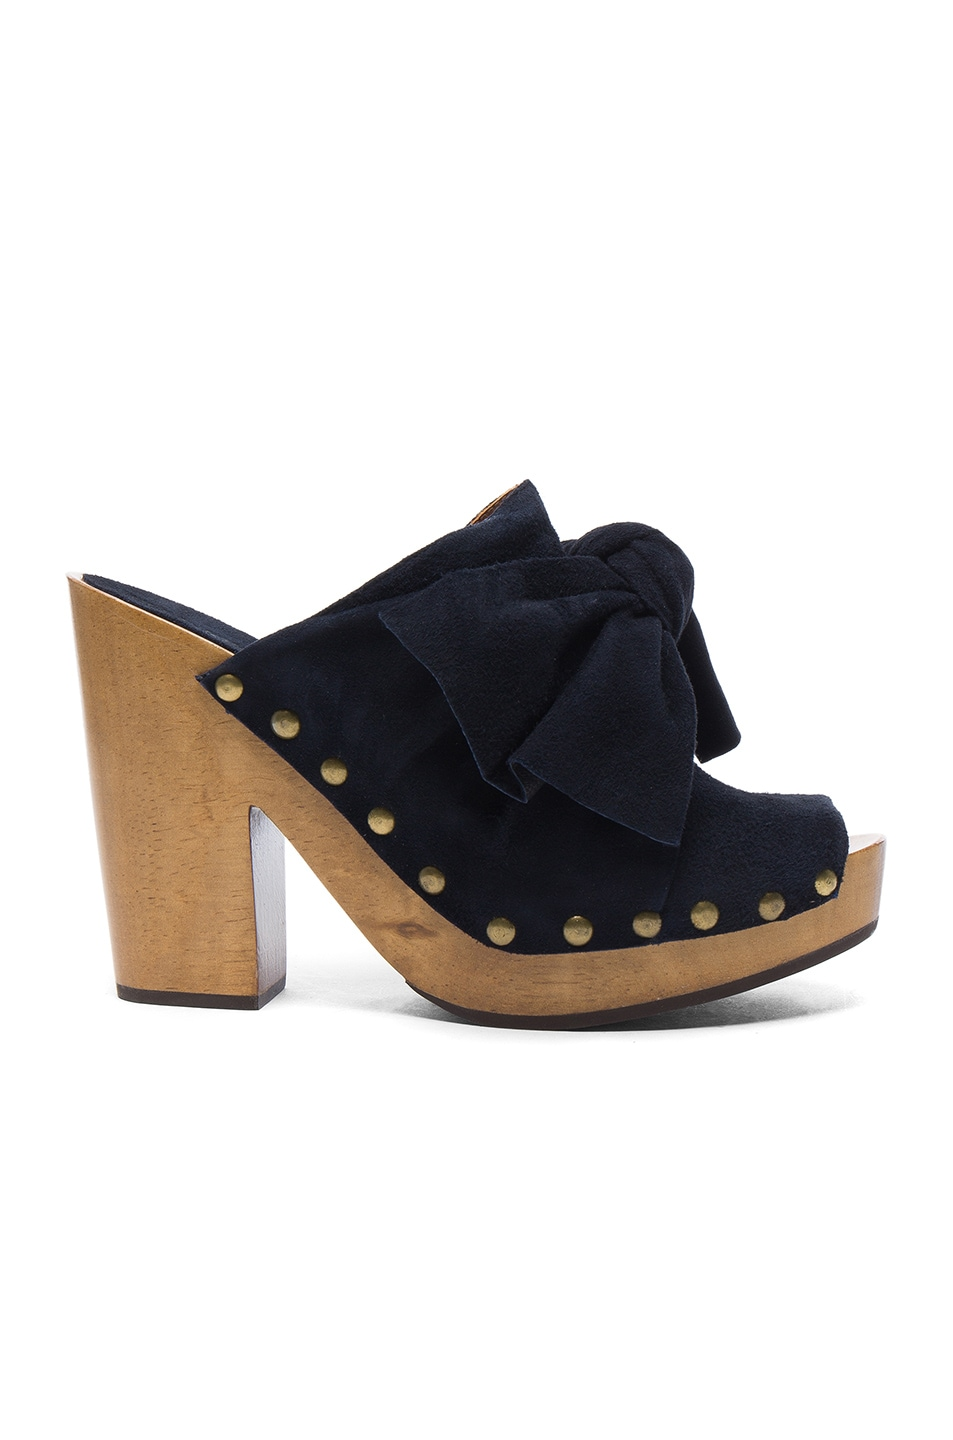 Image 1 of Ulla Johnson Suede Stevie Clogs in Midnight Suede